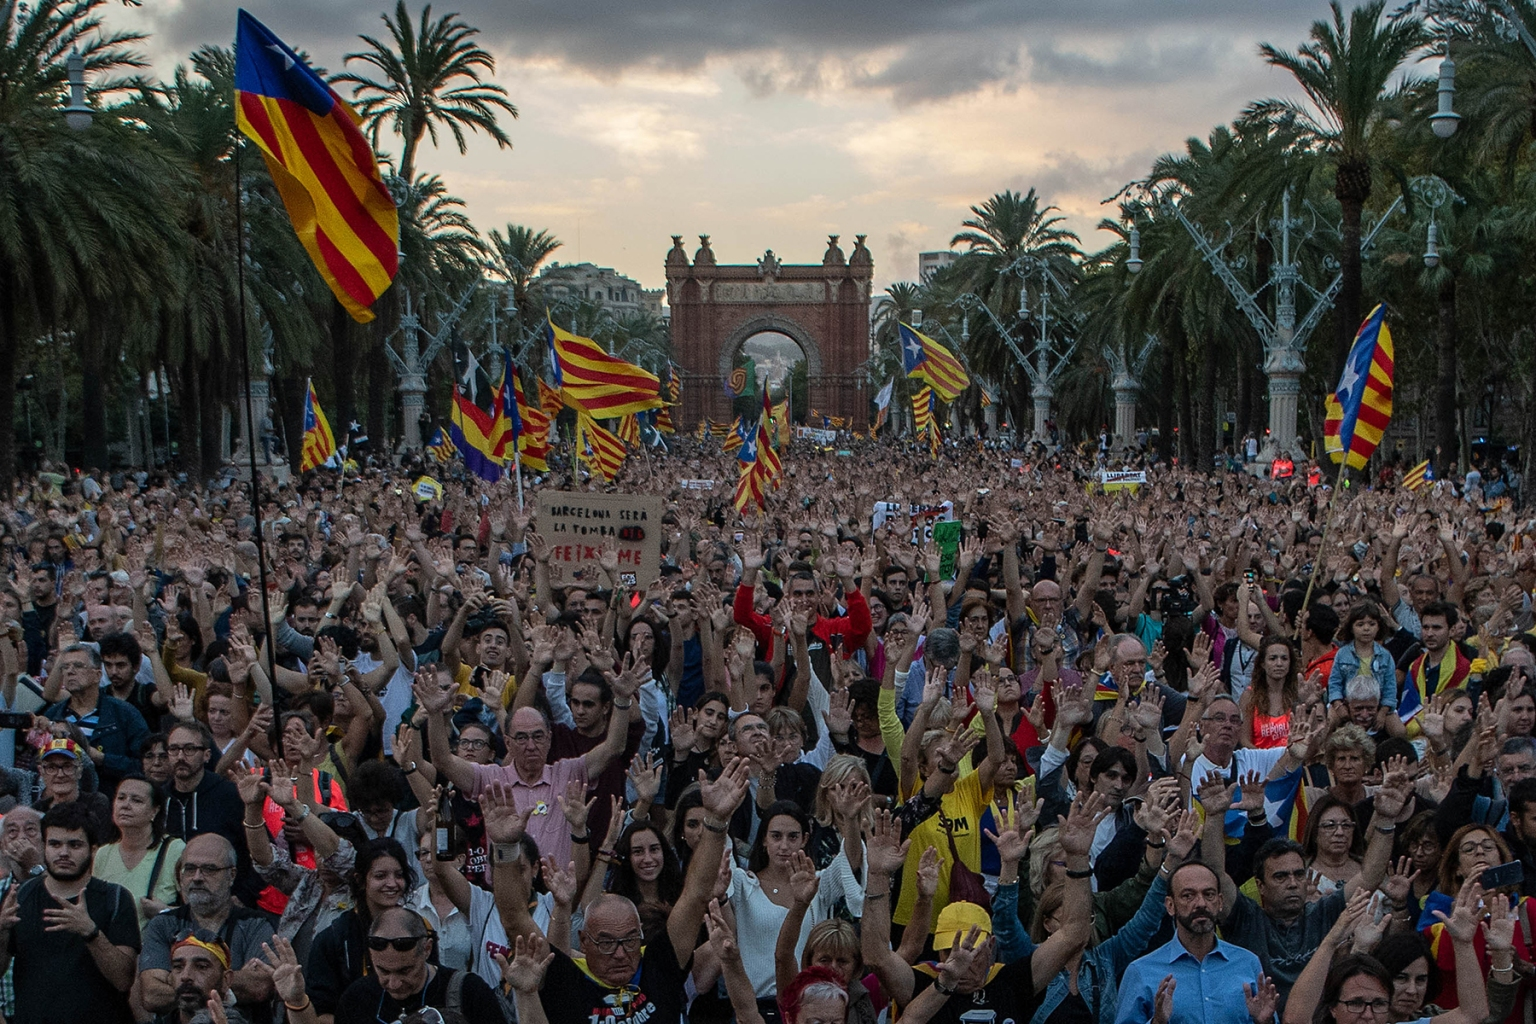 Catalonia's independence supporters march during a demonstration to mark the first anniversary of the independence referendum in Barcelona on Oct. 1. David Ramos/Getty Images